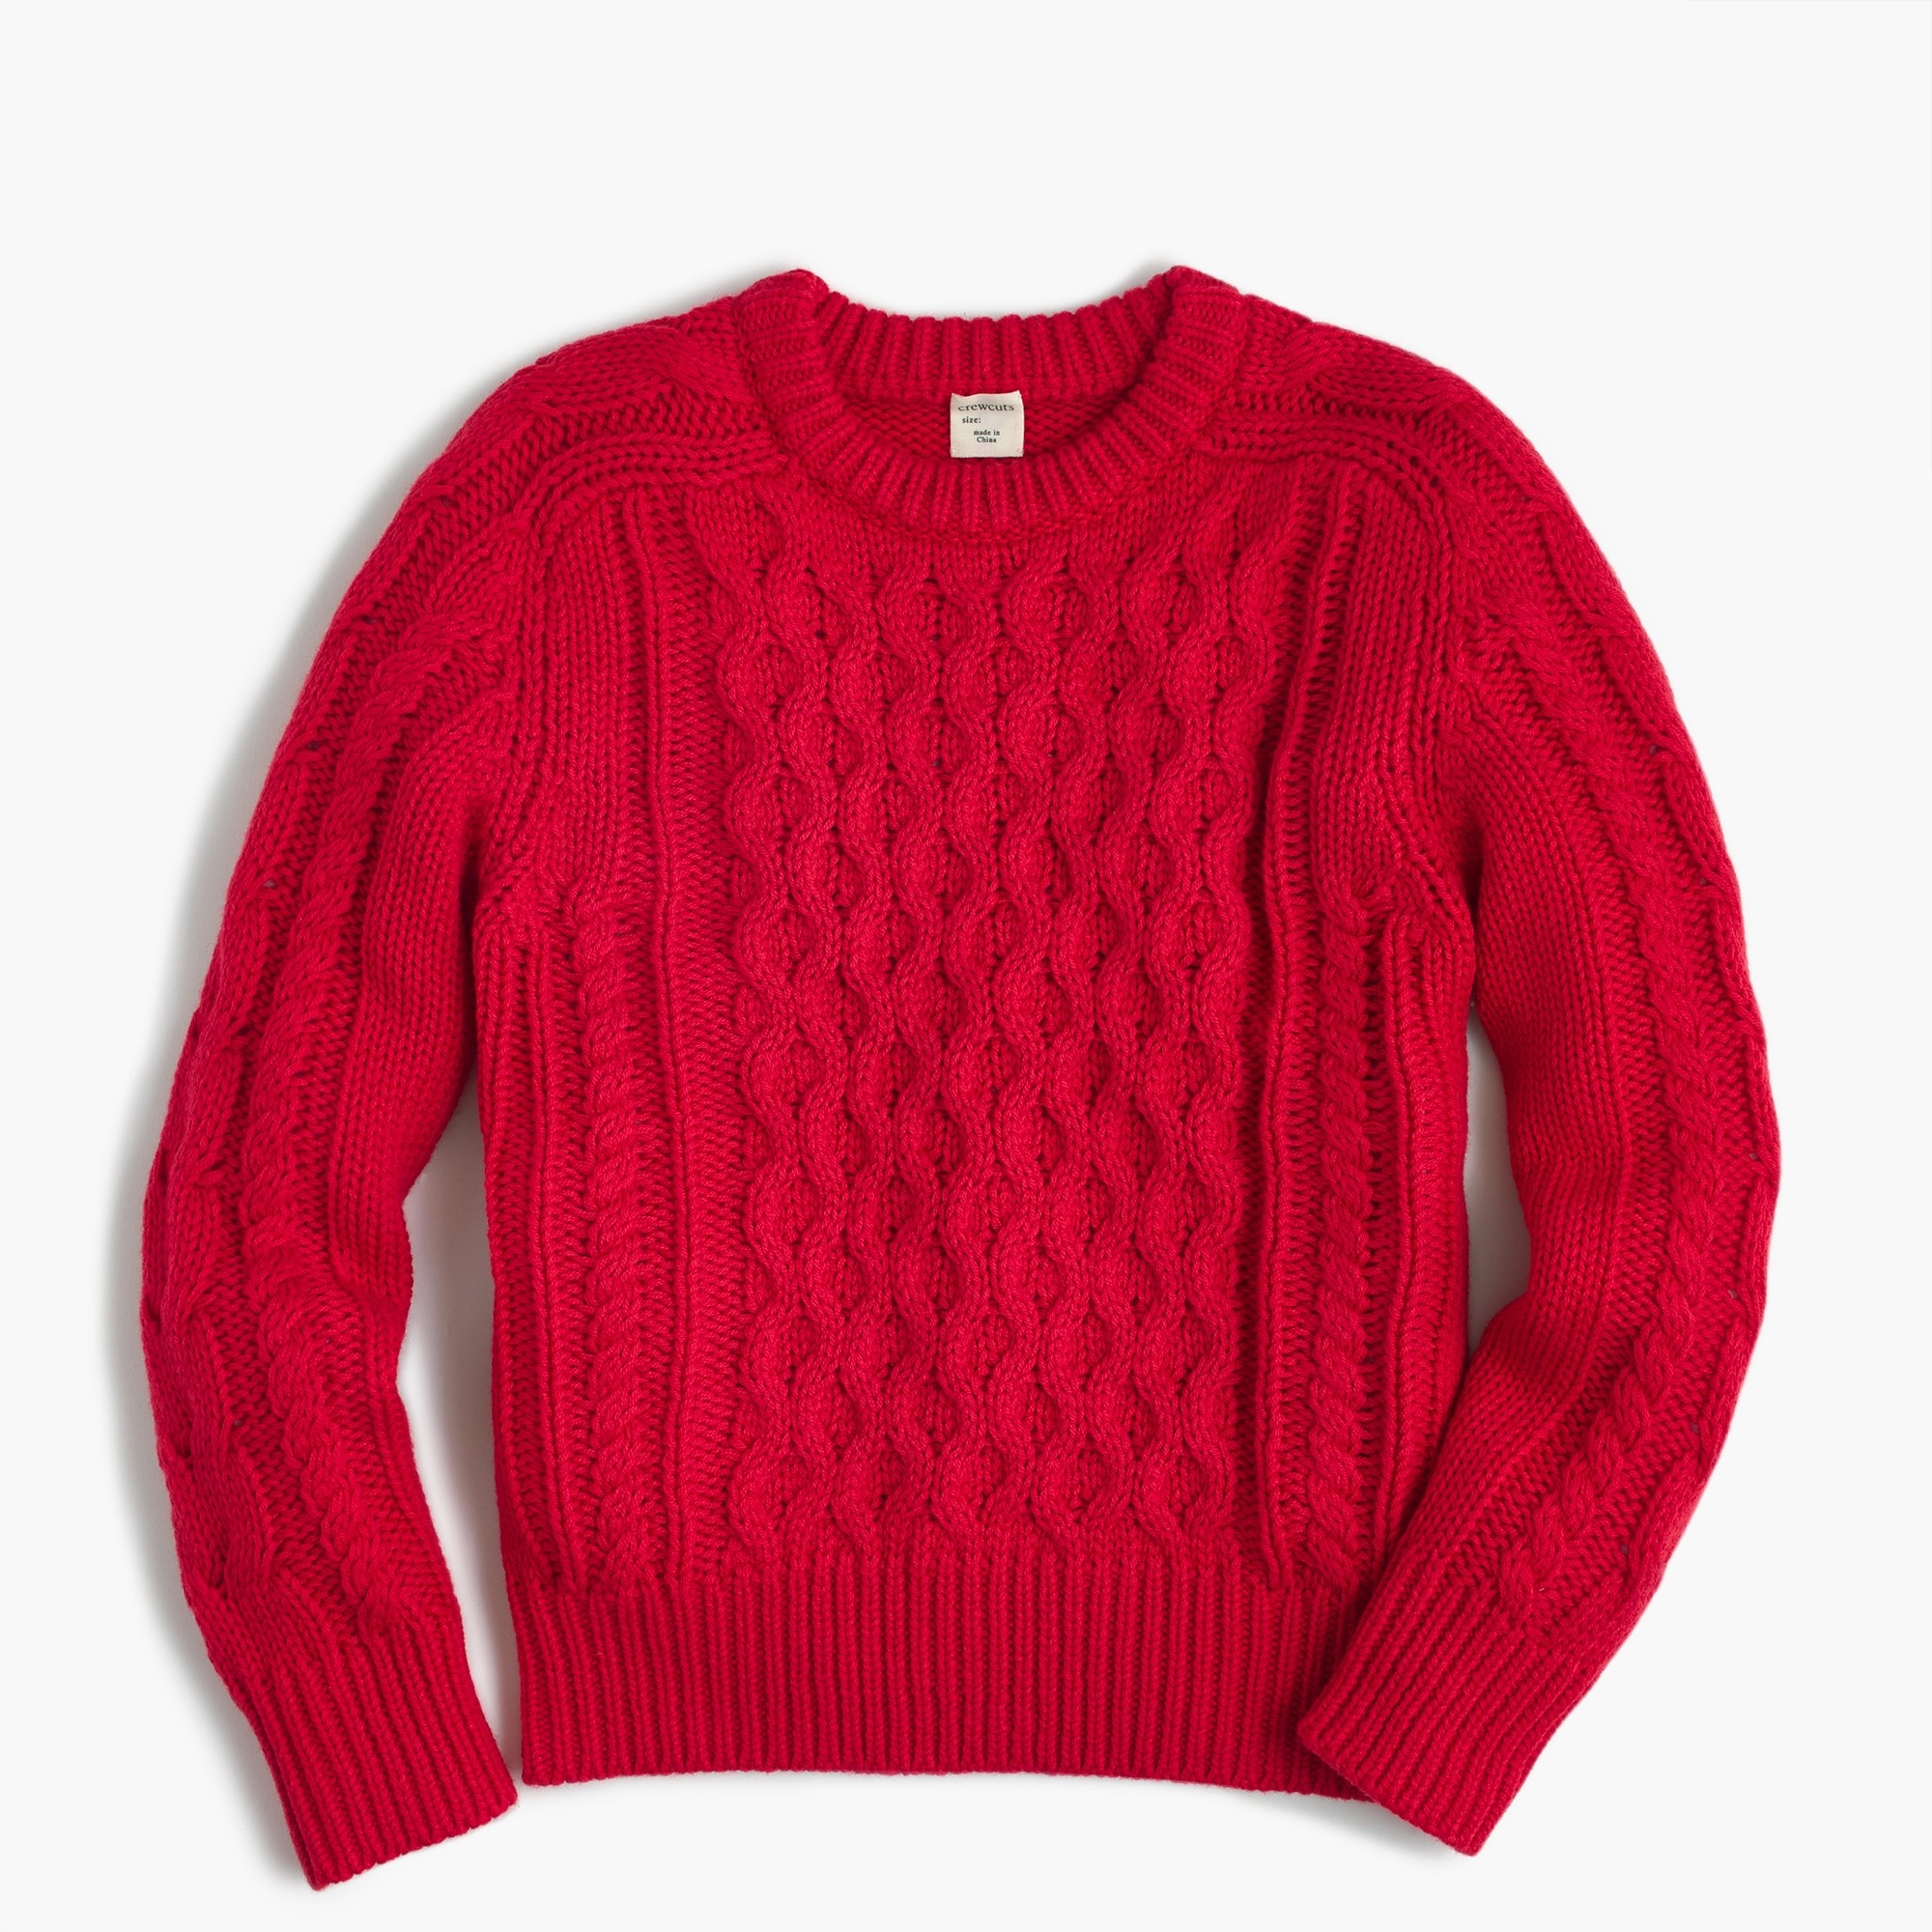 Kids' cable-knit crewneck sweater